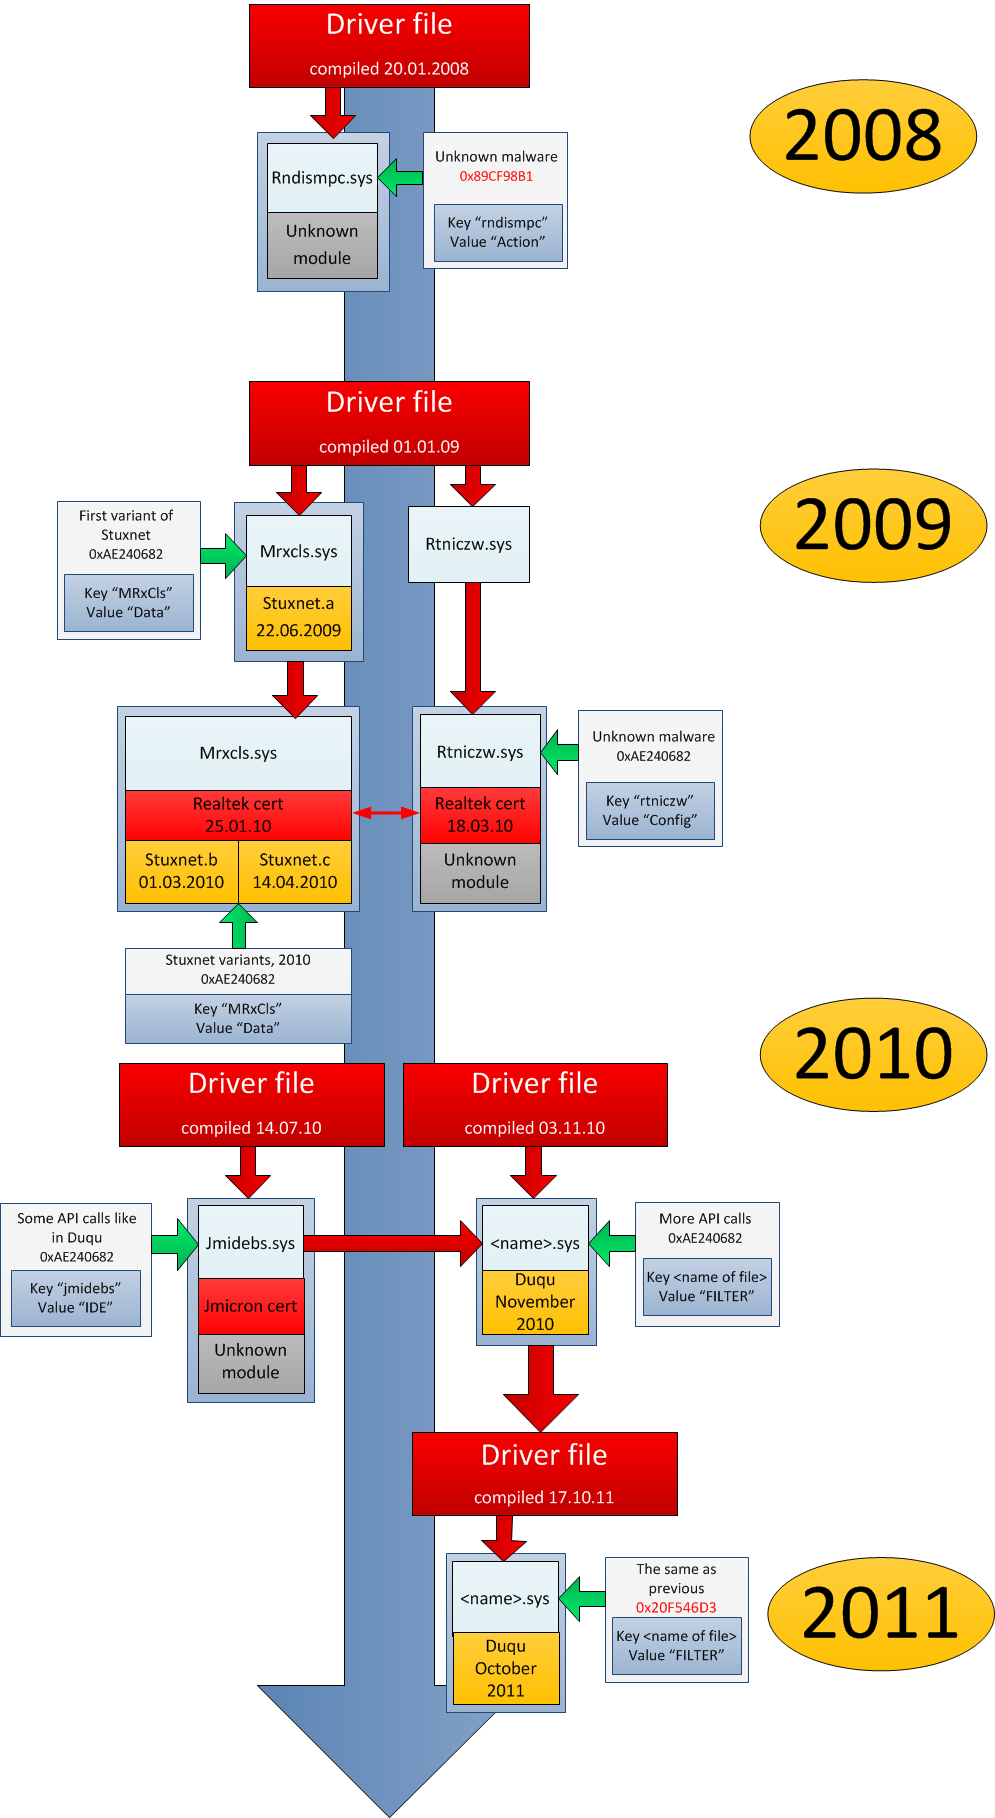 Driver Evolution from 2008 to 2011 (Kaspersky)